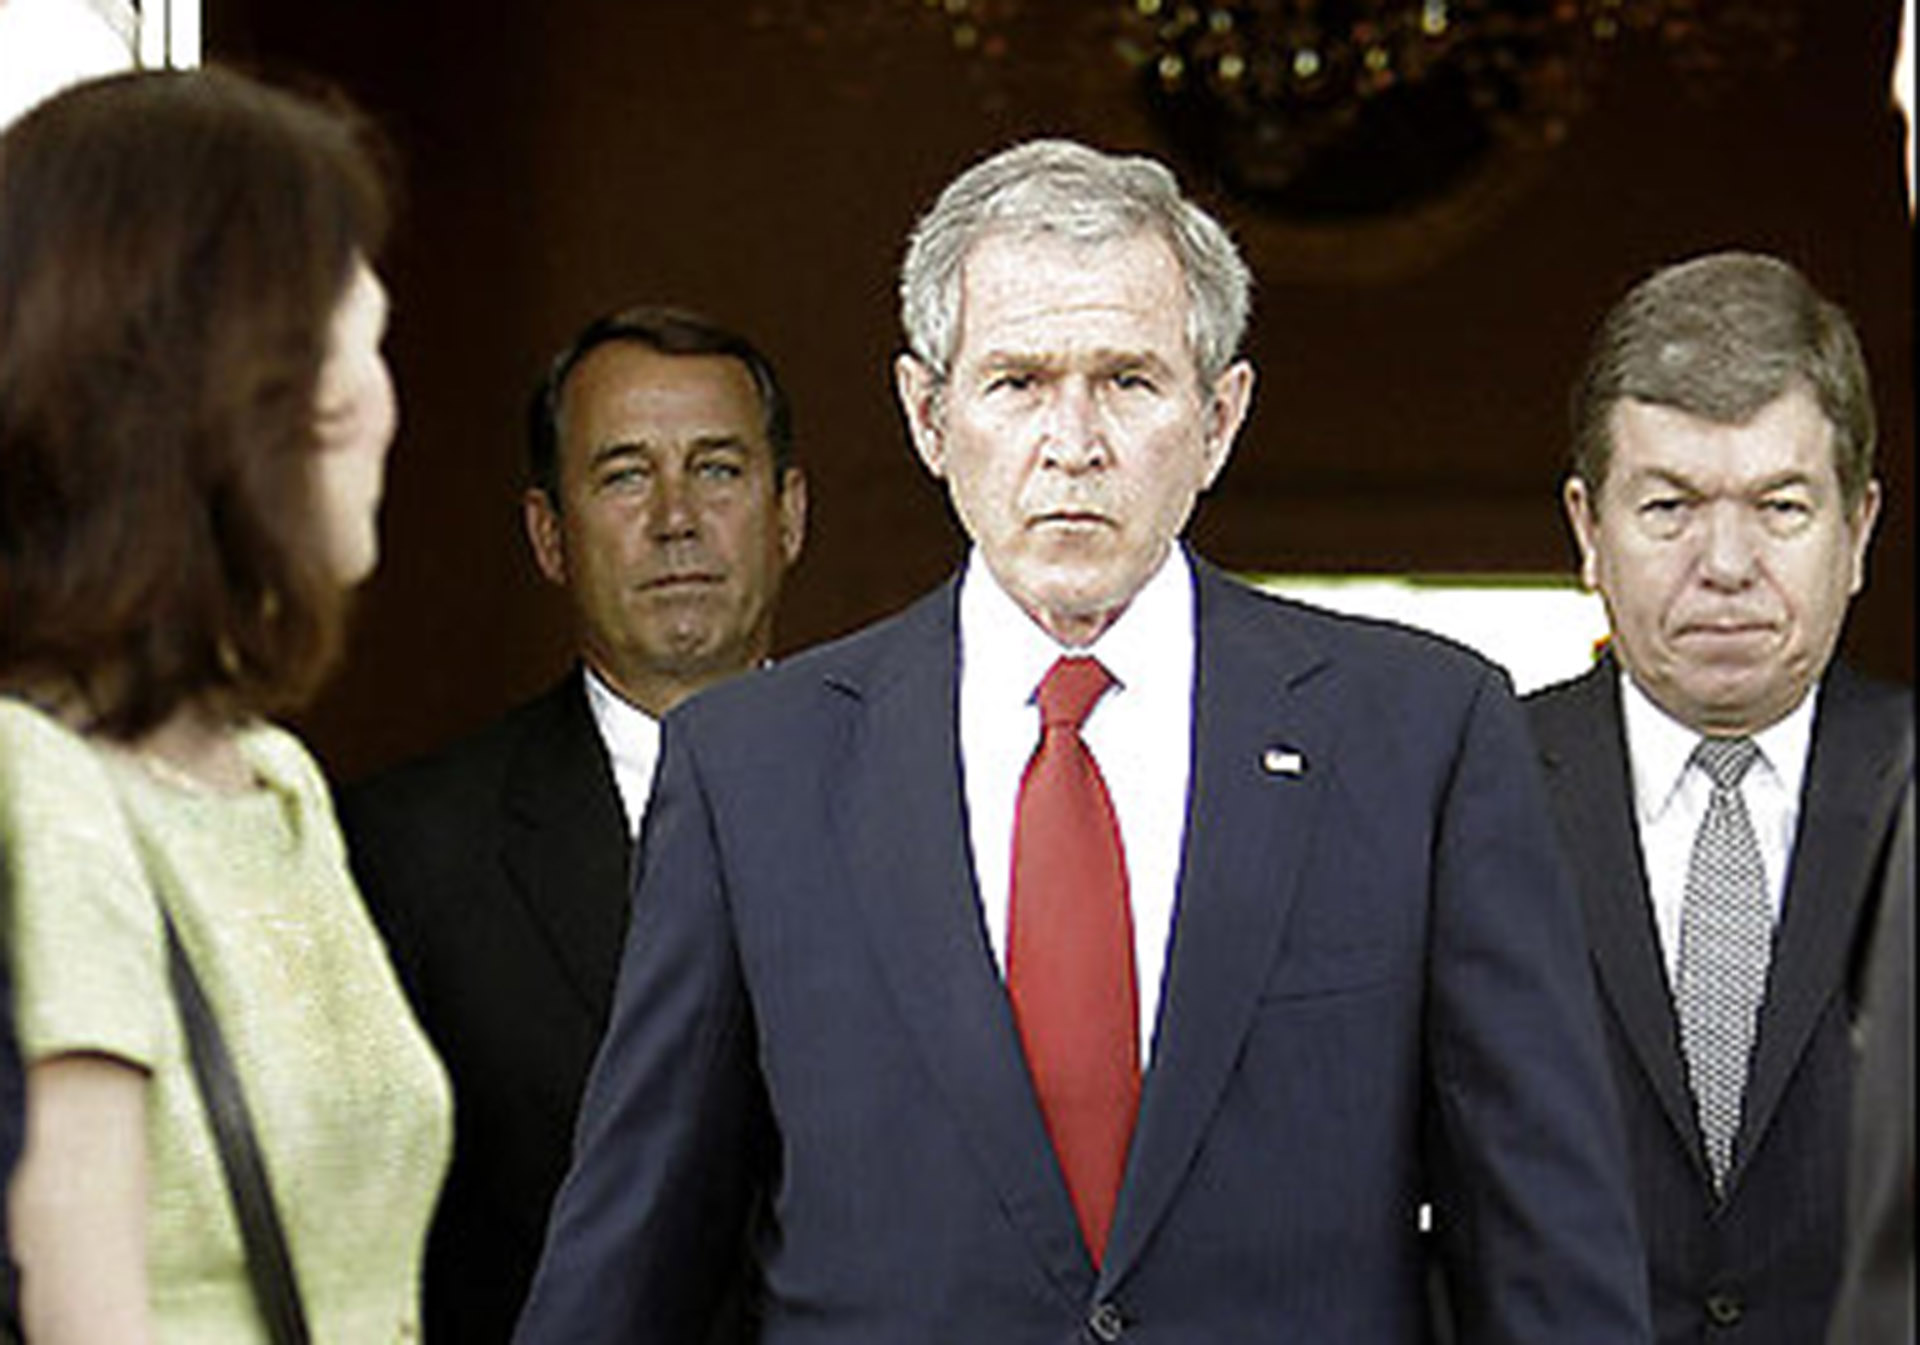 President Bush, center, flanked by House Minority Leader John Boehner of Ohio, left, and House Minority Whip Roy Blunt of Mo., walks out to the North Portico of the White House in Washington, Thursday, March 29, 2007. (AP Photo/Pablo Martinez Monsivais)